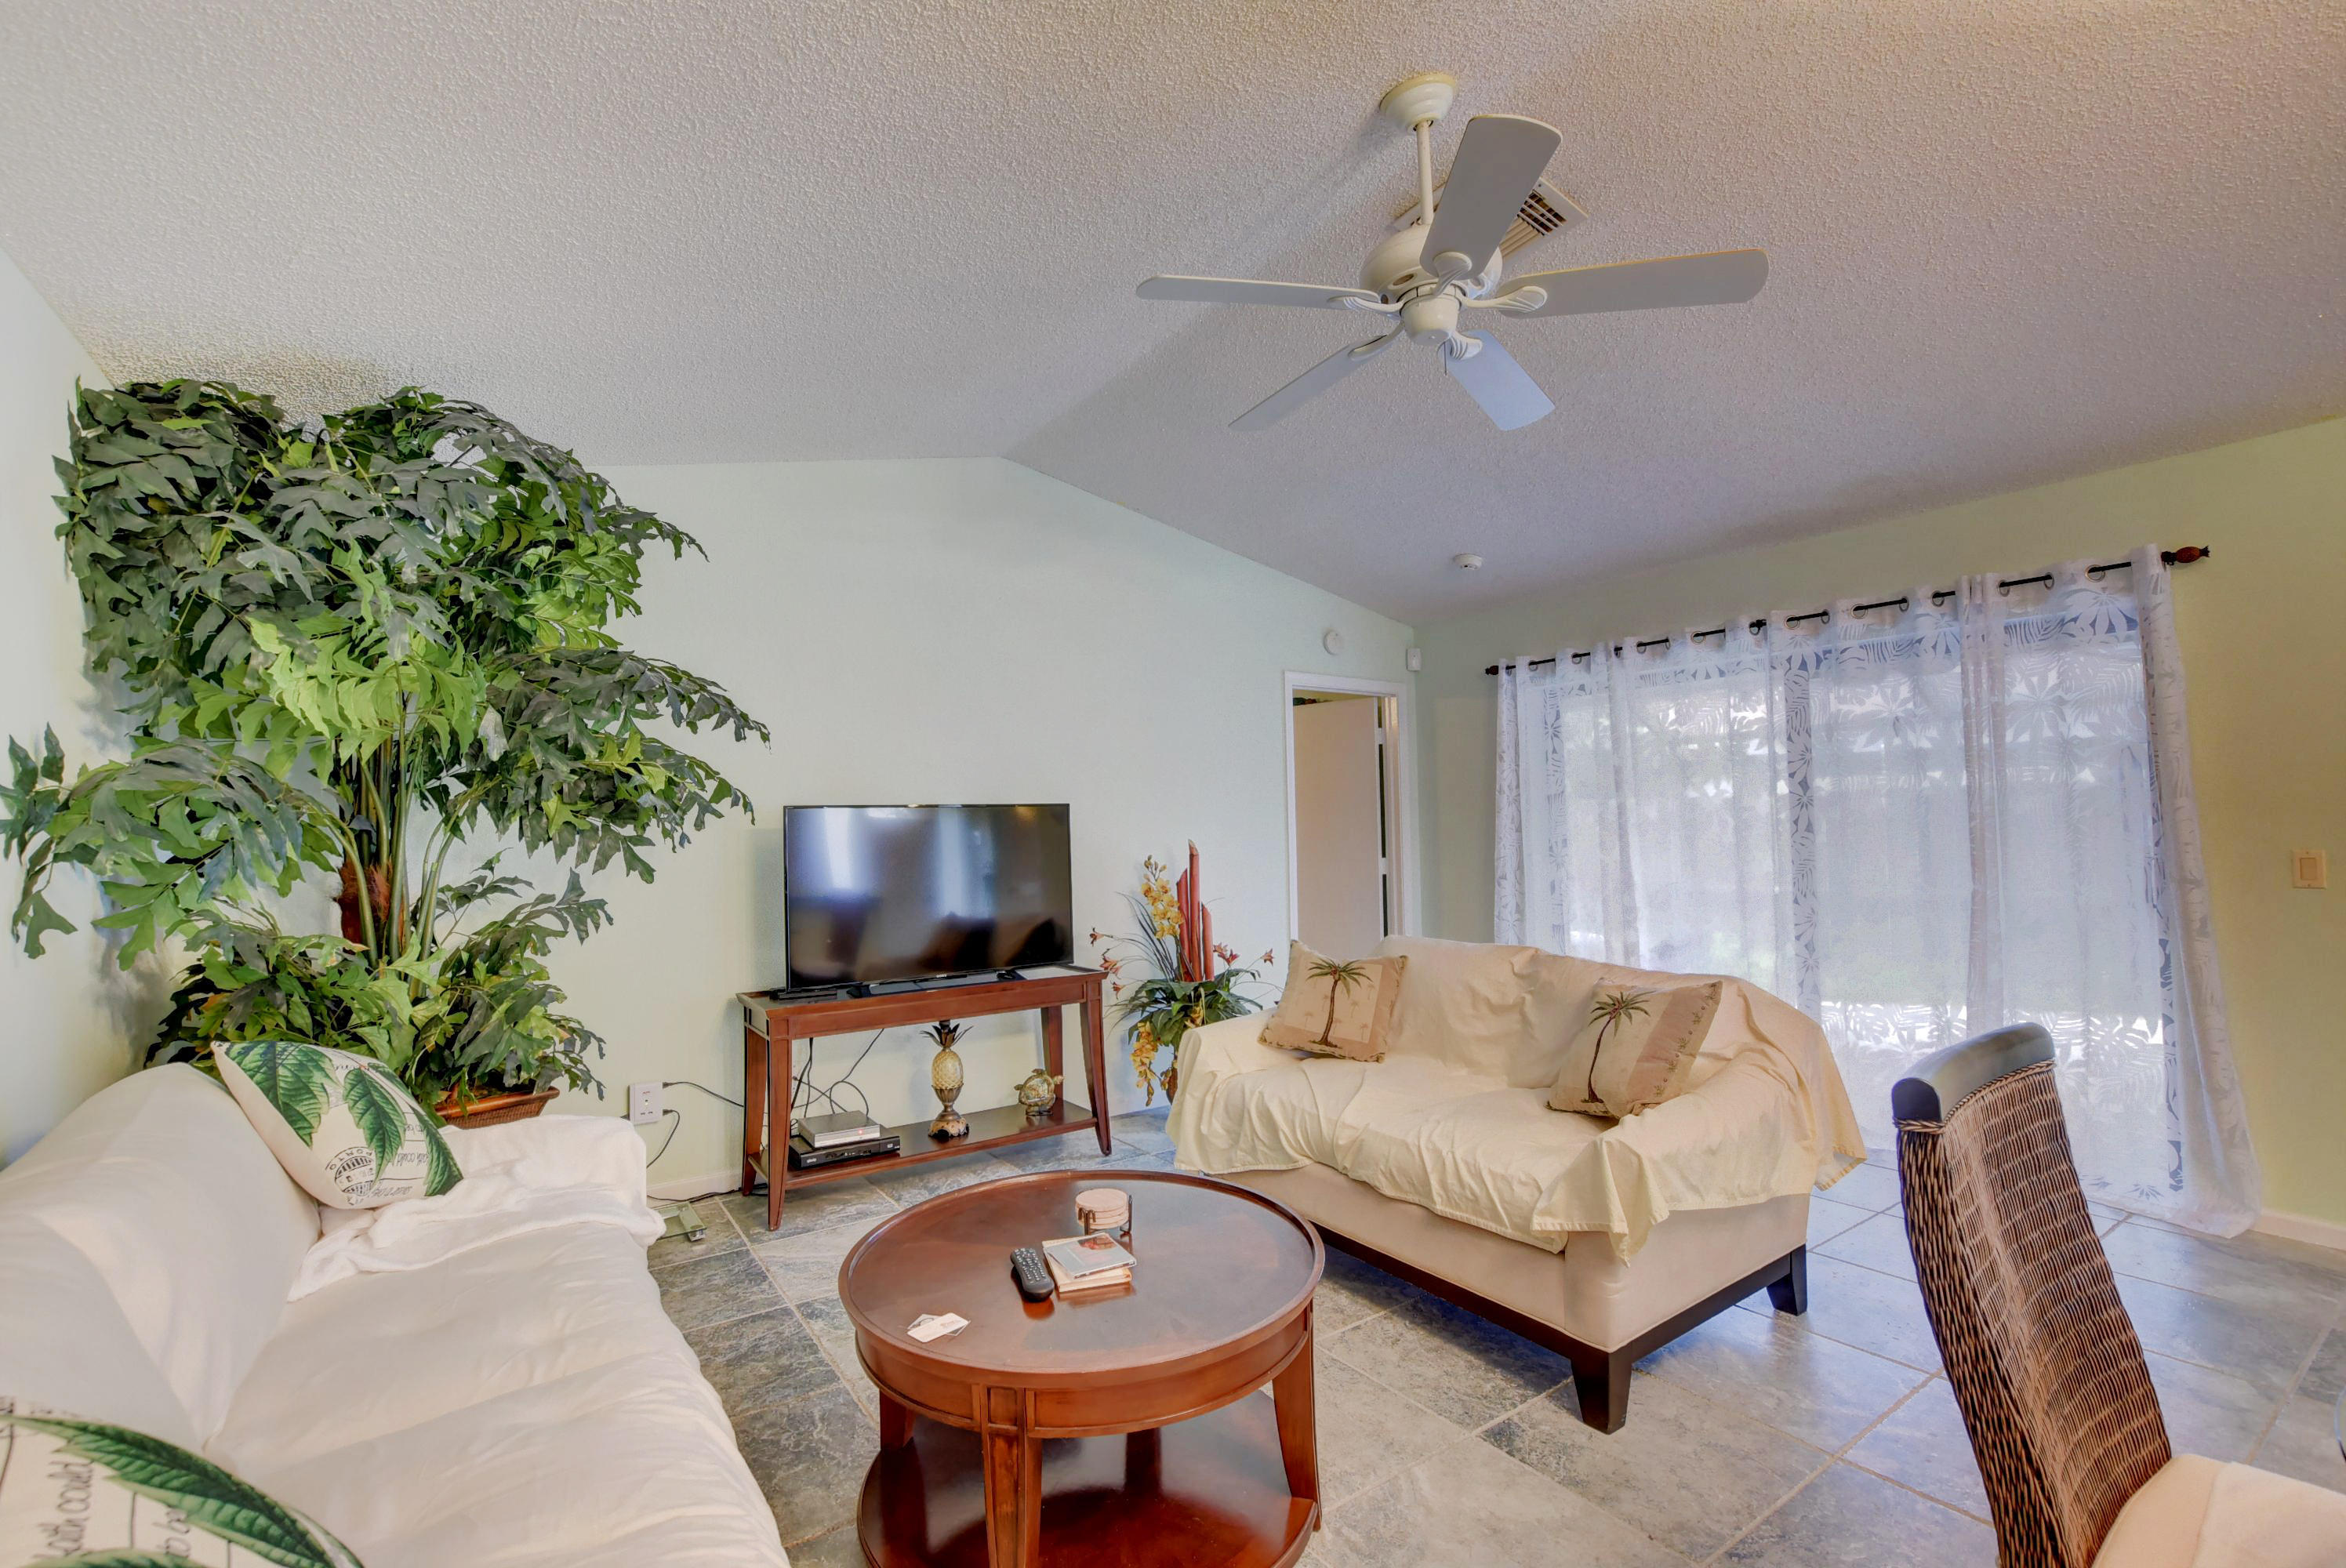 Listing: 8930 SW 21st Court #B, Boca Raton, FL.| MLS# RX 10455270 | Glenn  G. Fradera | Sunshine Properties Of South Florida Inc. | Homes For Sale  Delray ...